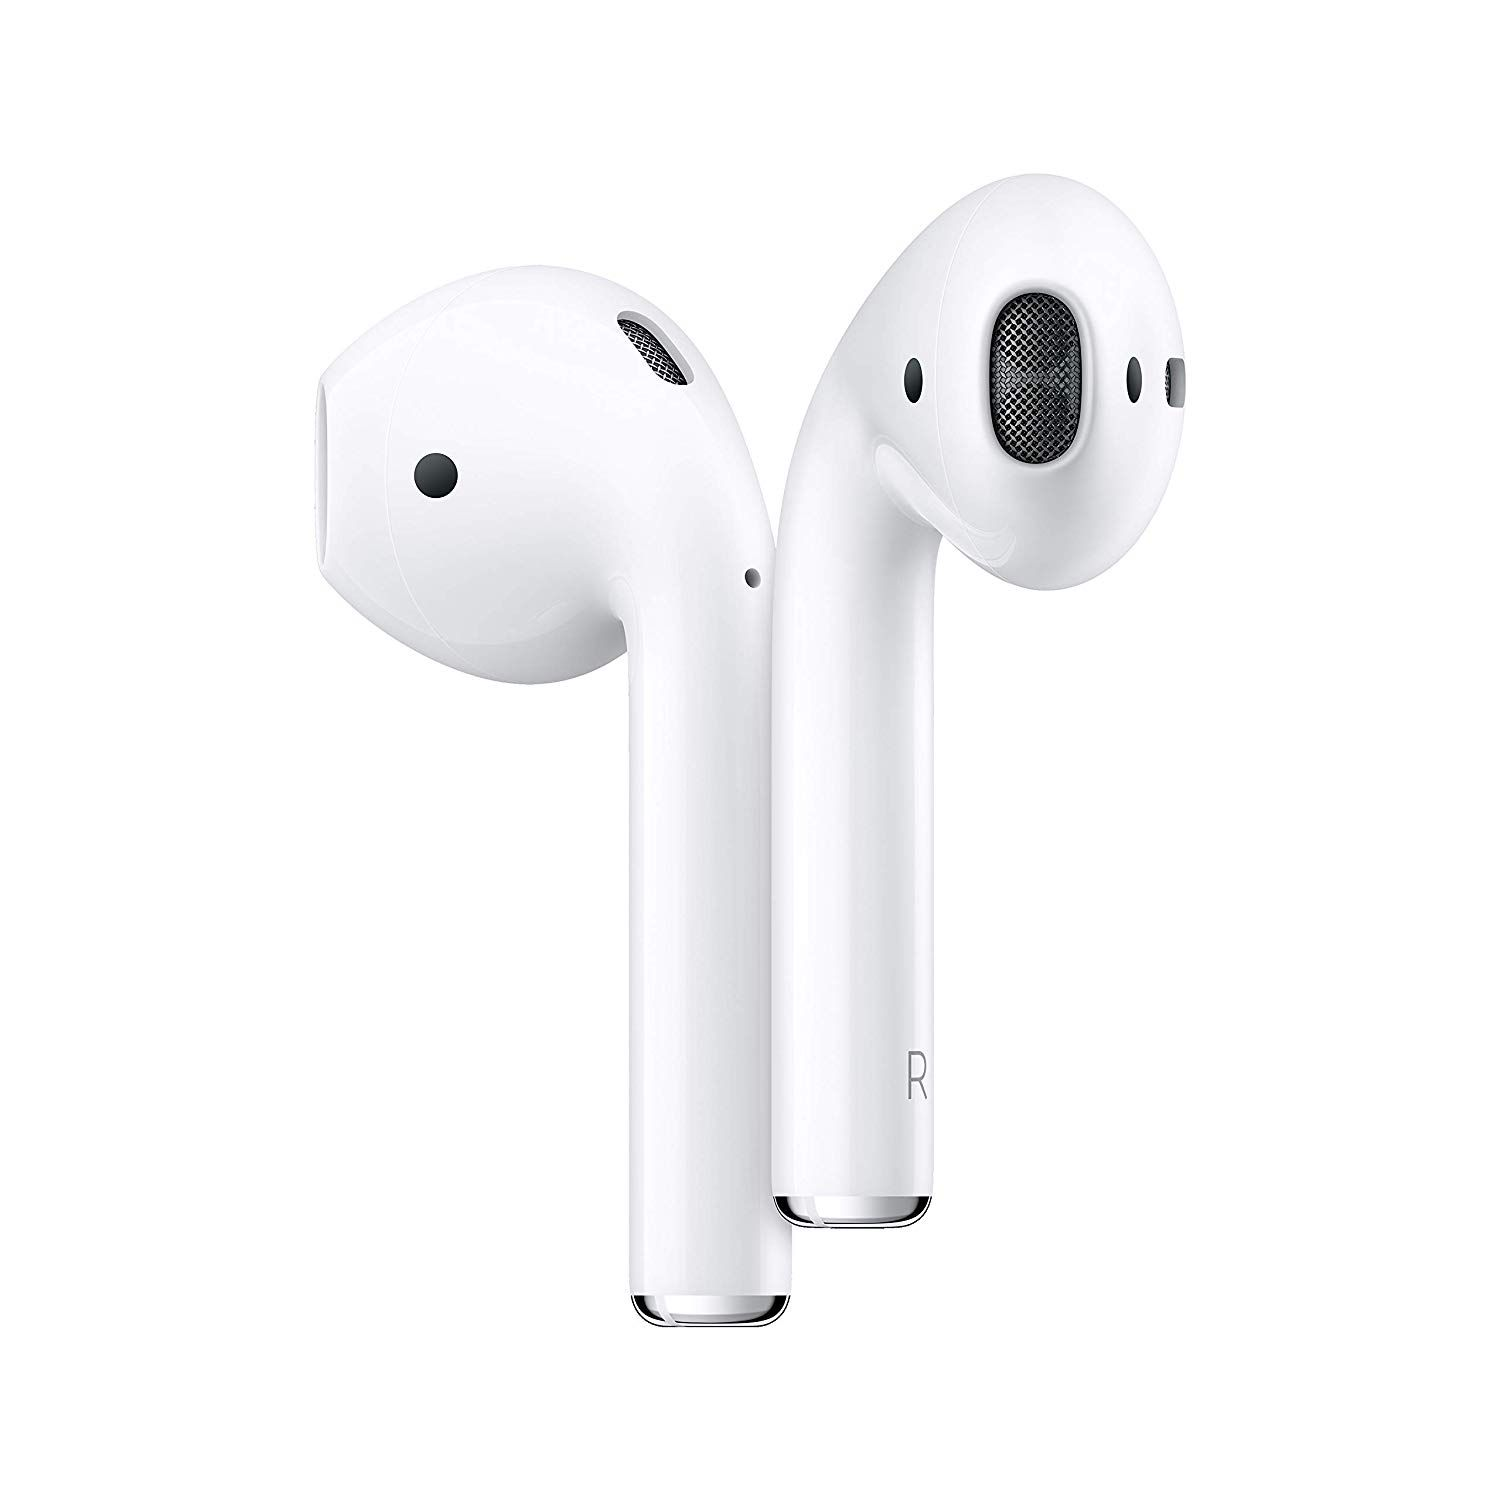 Apple Air Pods Deal On Amazon Apple Airpods 2 Wireless Earbuds Earbuds